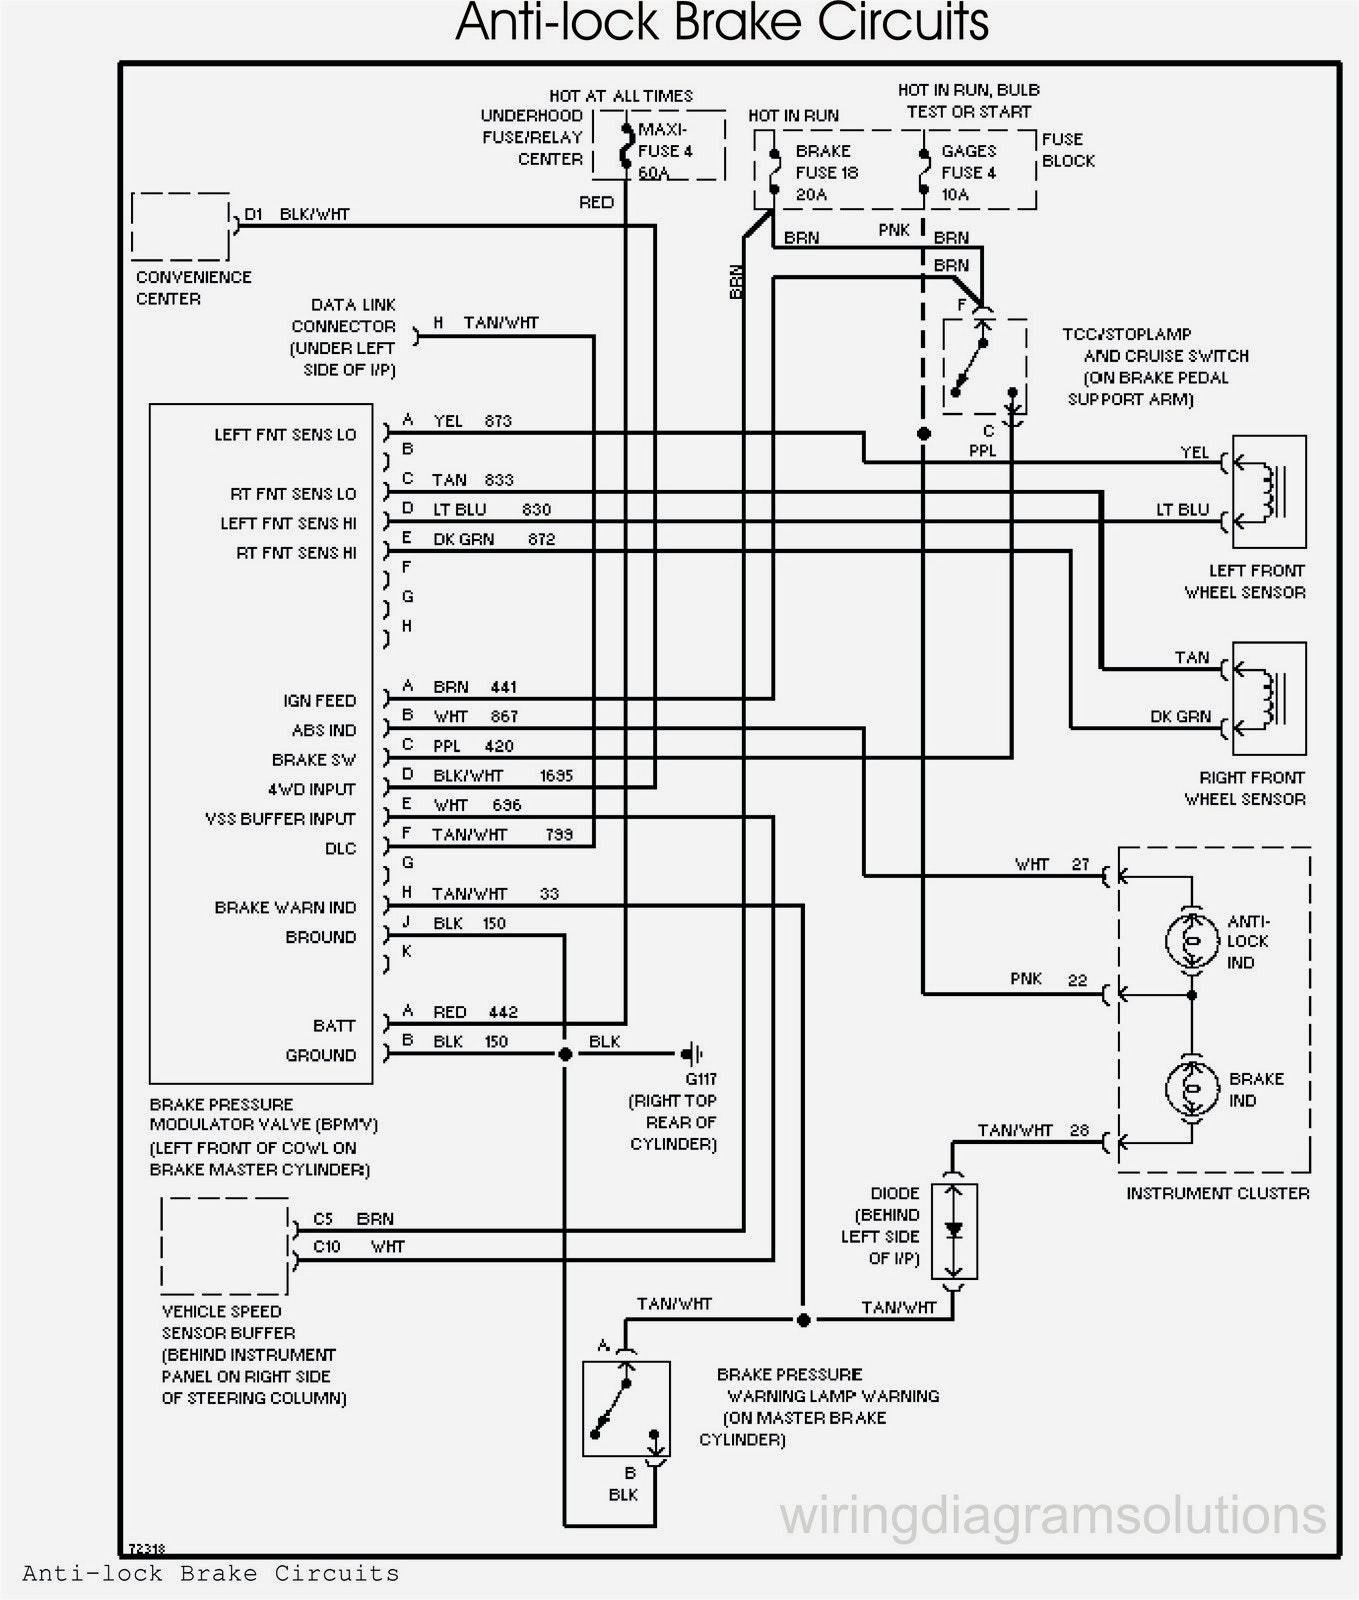 View Wiring Diagram Backup Camera Wiring Schematic